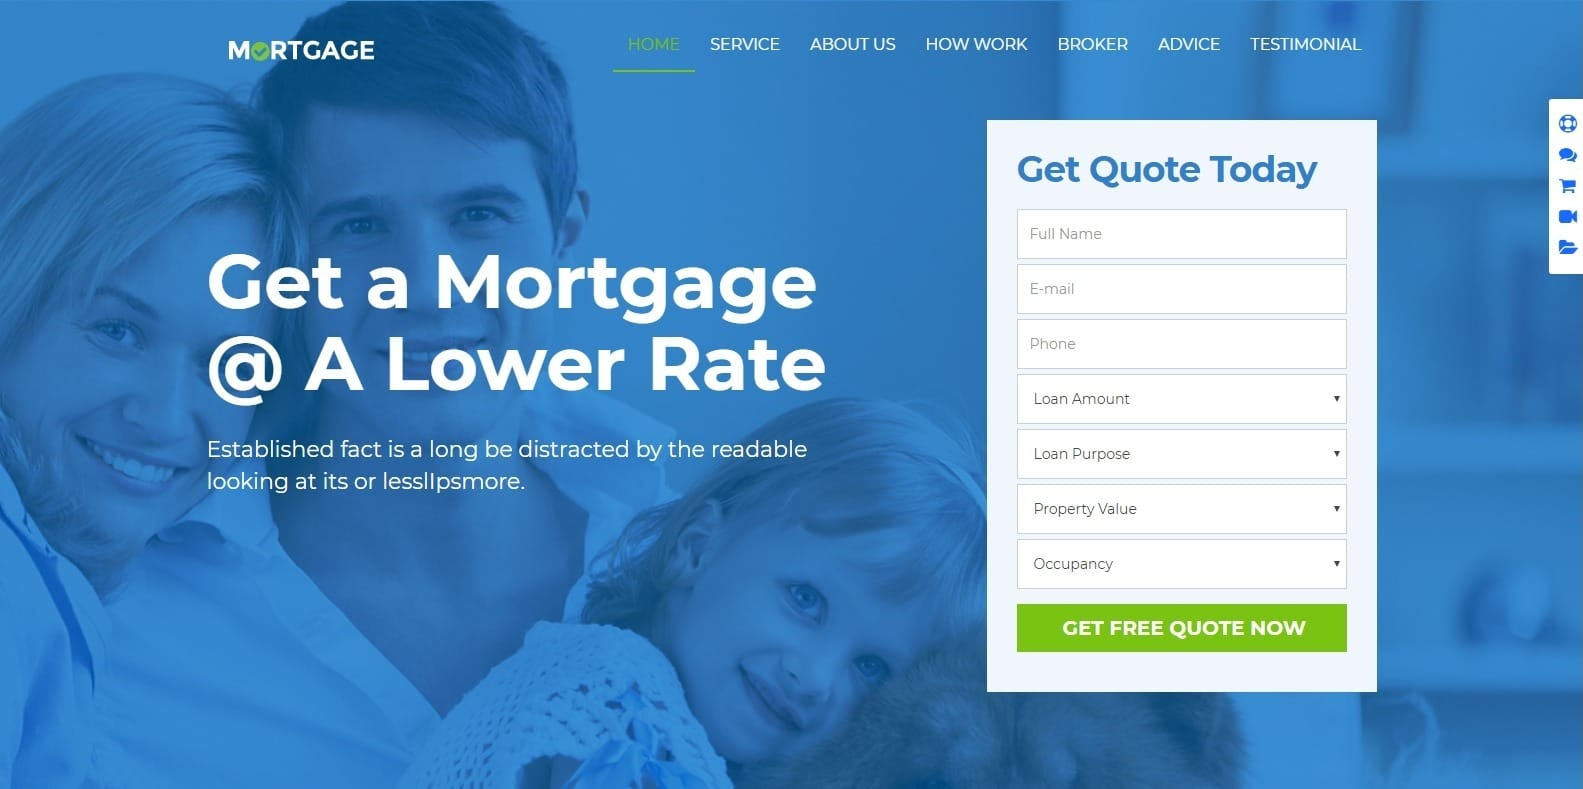 mortgage-wordpress-mortgage-broker-website-template